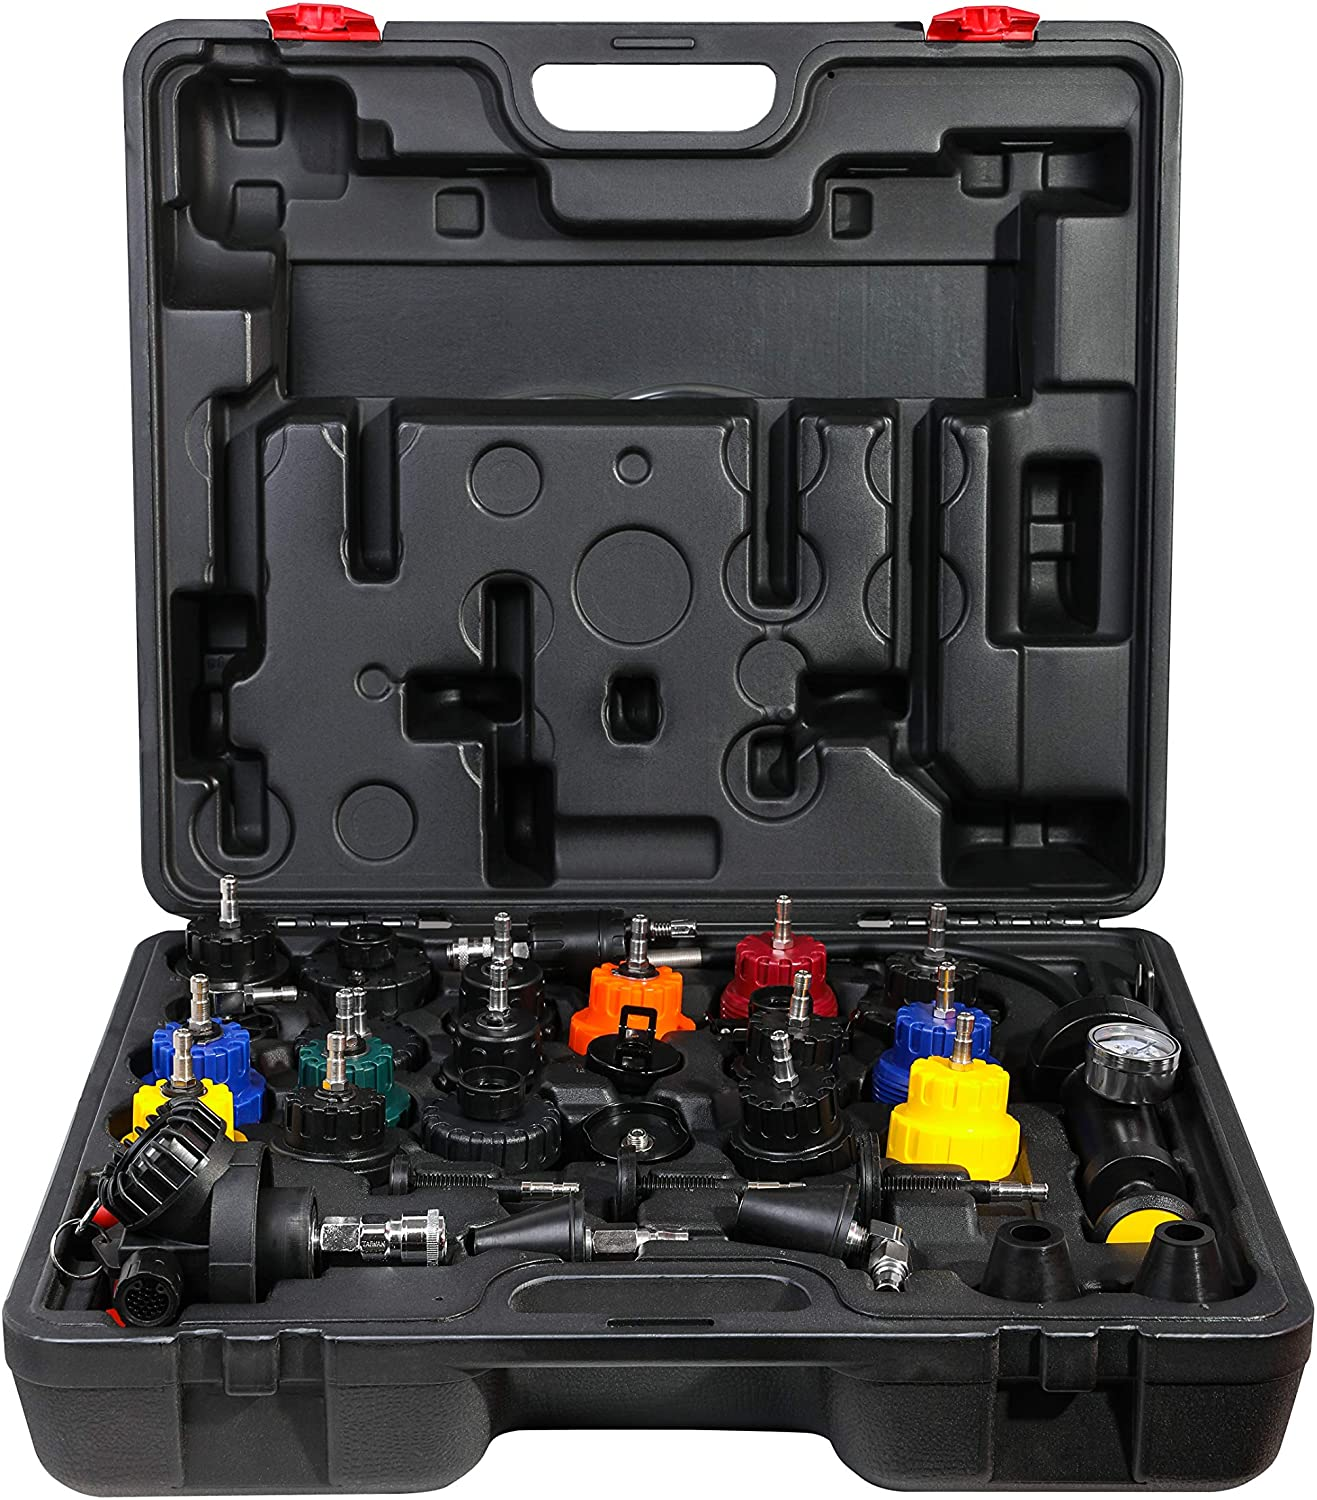 ARES 15002-31-Piece Radiator Pressure Tester and Vacuum Type Cooling System Kit